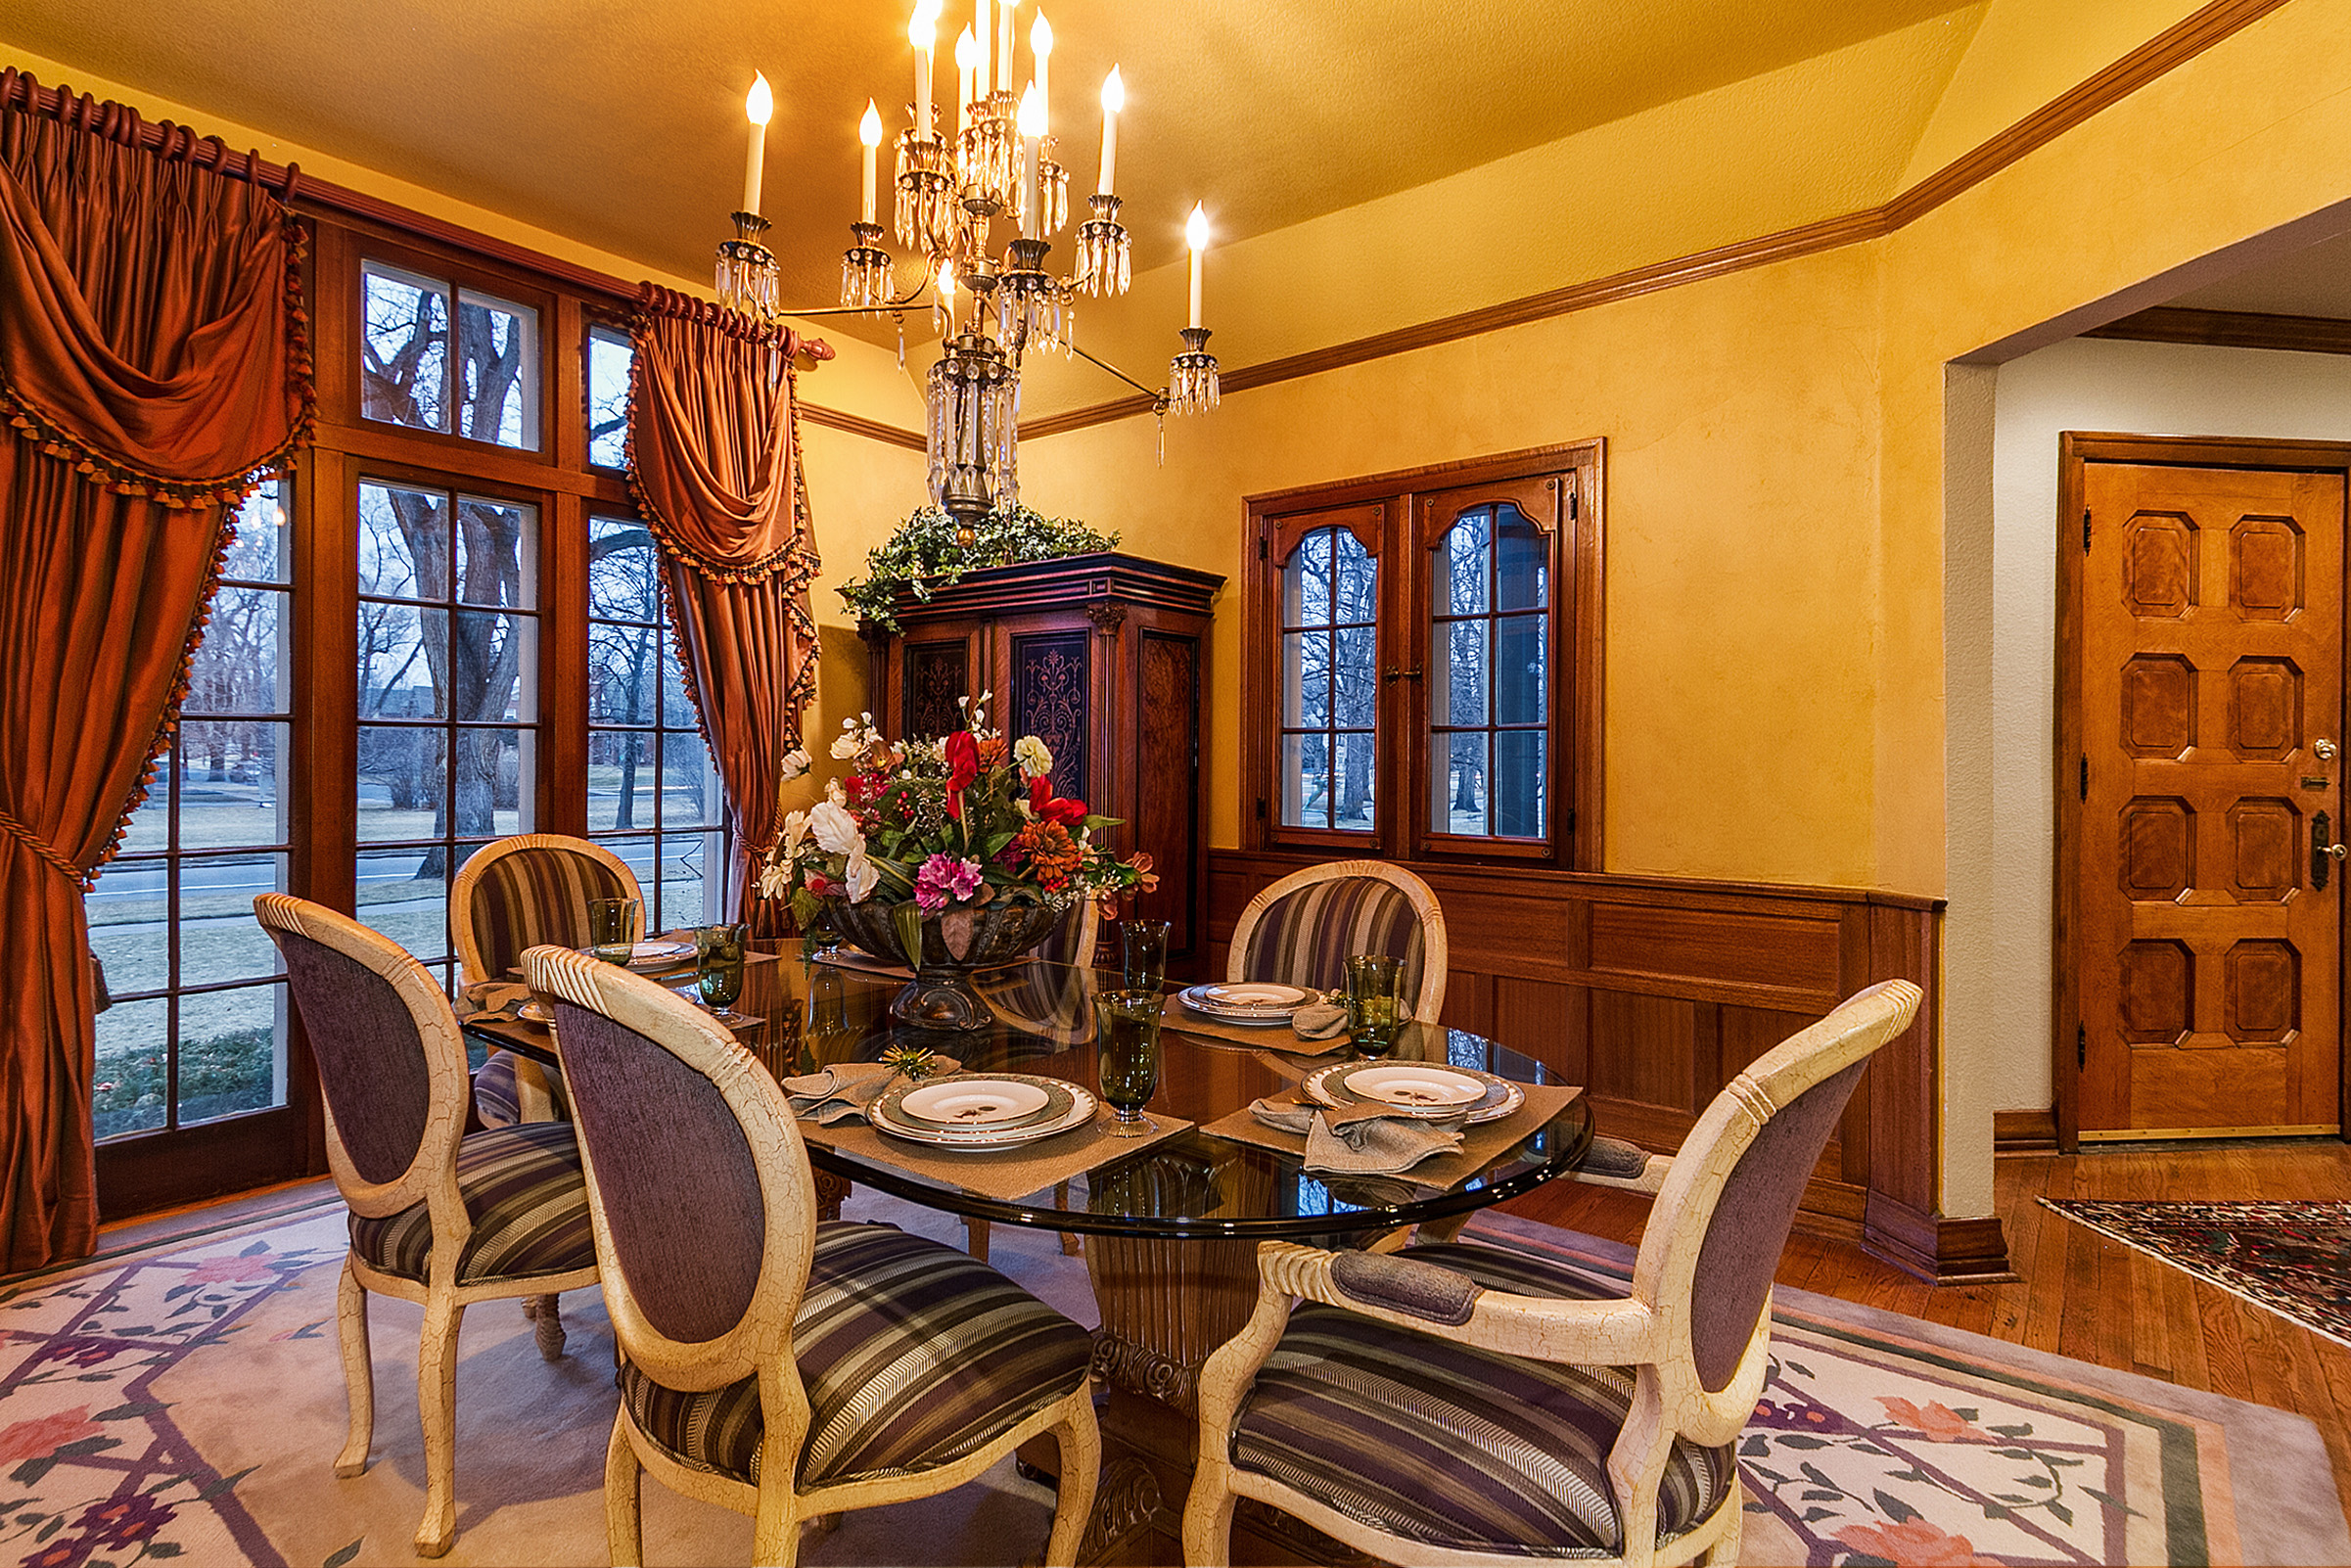 1183070_Dining-Room-with-Wainscot-and-Large-Windows_high.jpg